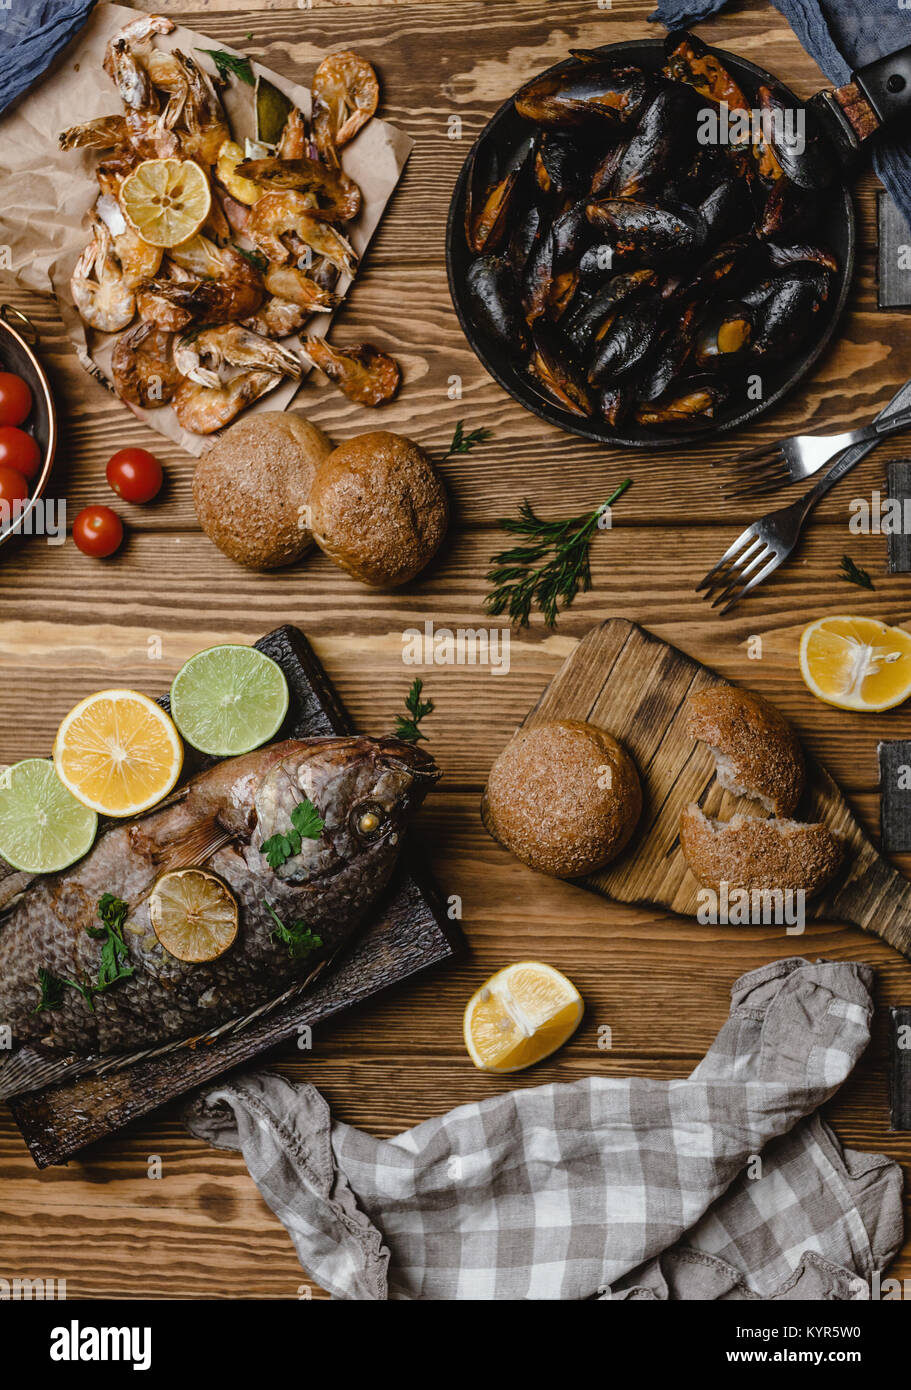 Top view of assorted seafood and baked fish with bread and tomatoes on wooden table - Stock Image